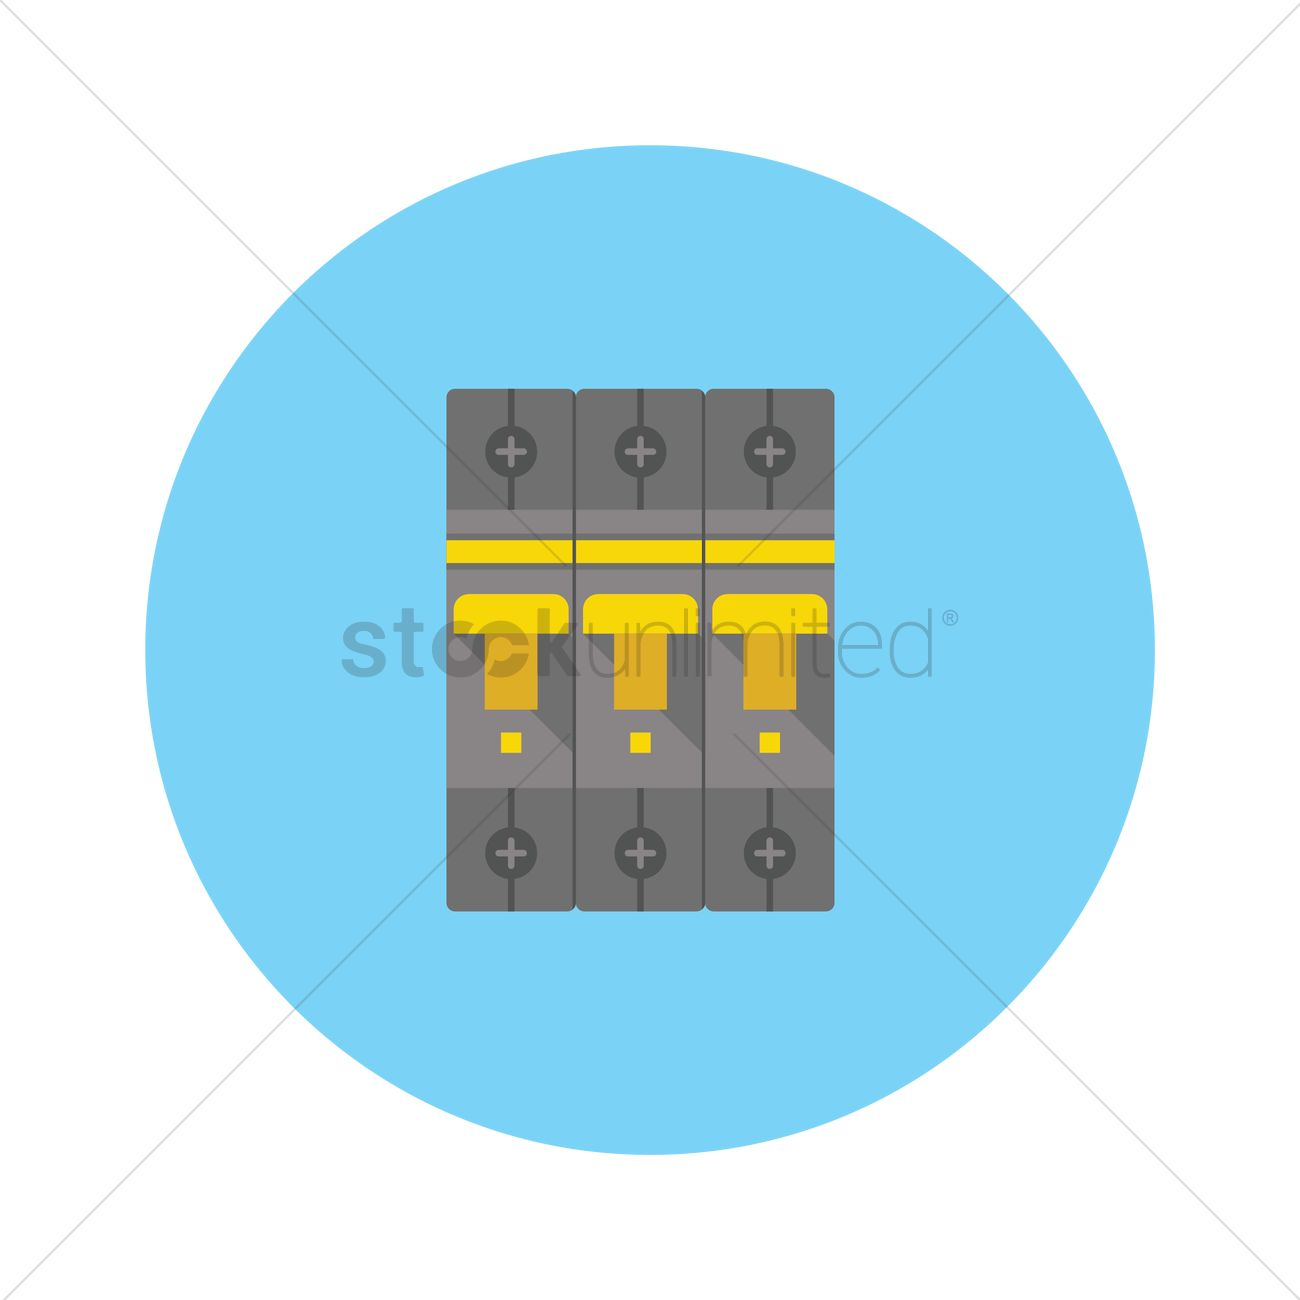 Circuit breaker and fuse box Vector Image.